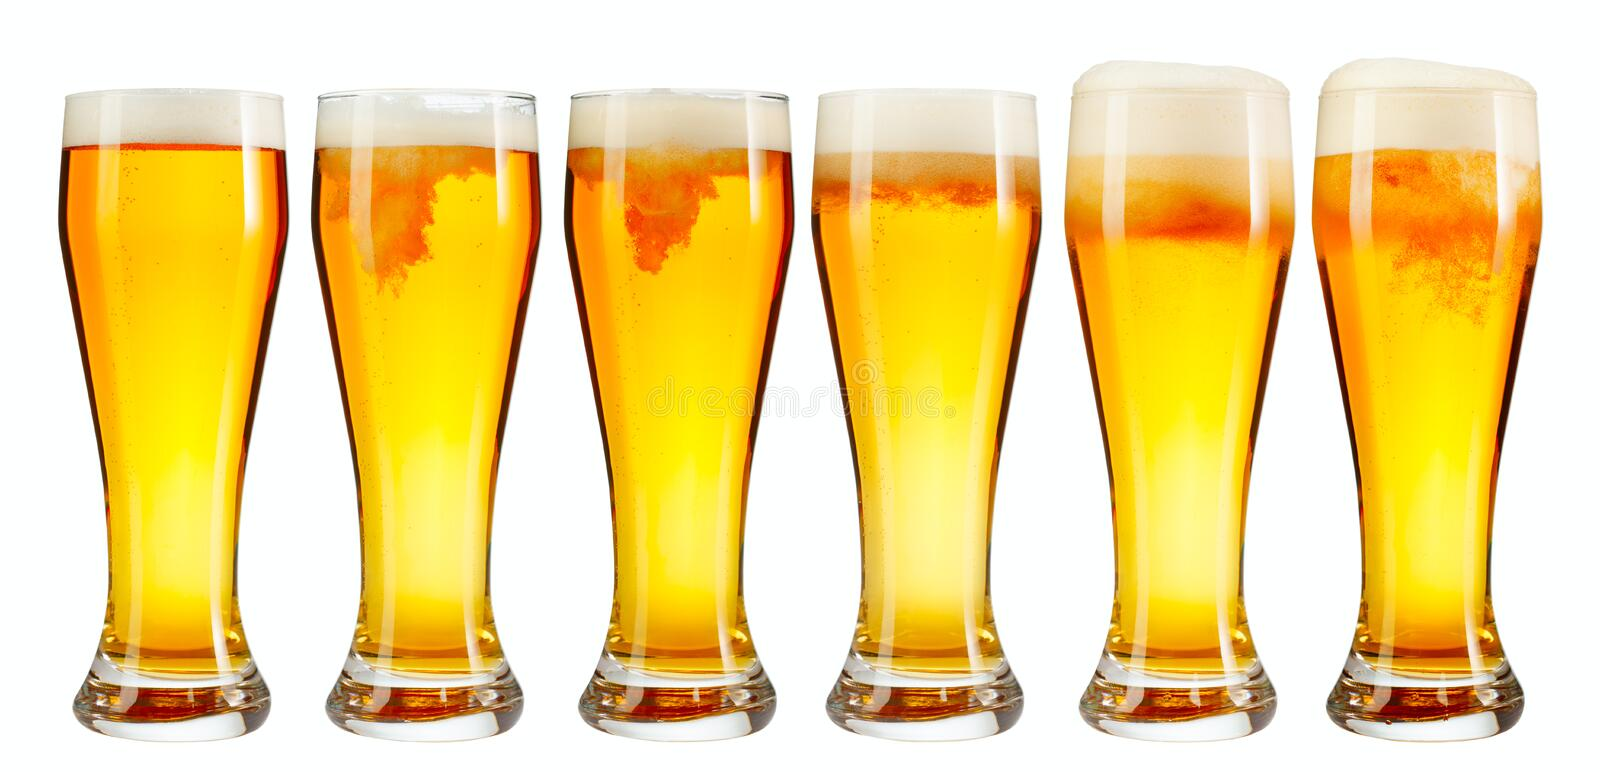 Set of a glass of cold light beer with foam isolated on white background. Set of a glass of cold light beer with foam isolated on white background stock images